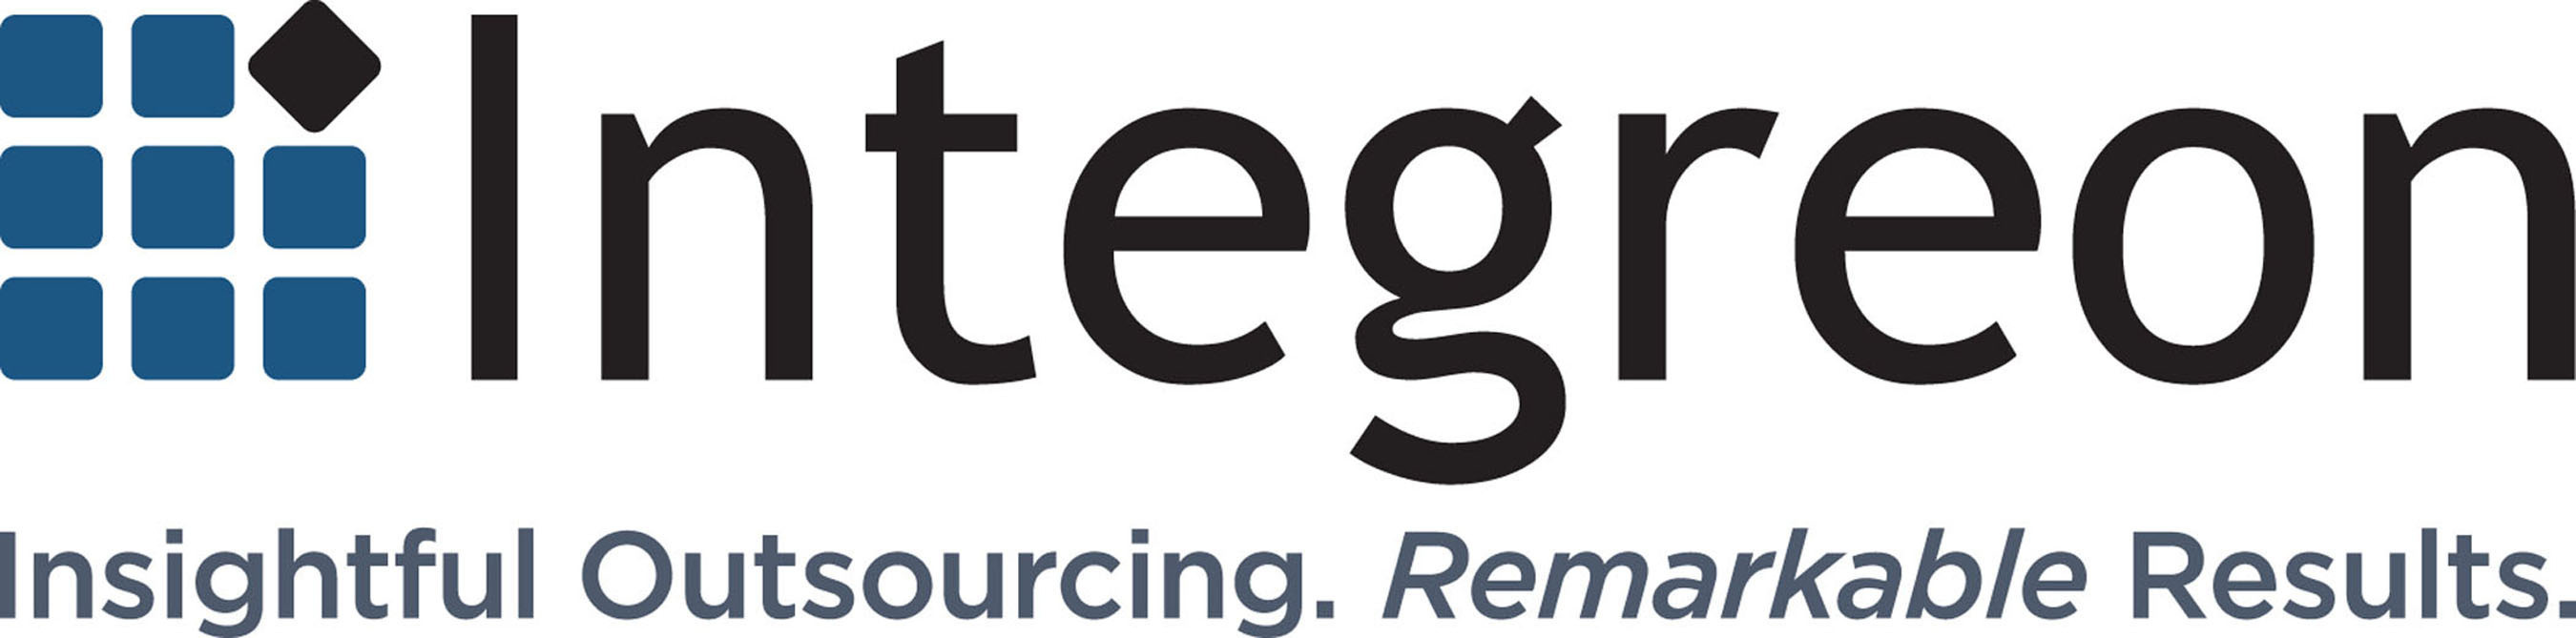 Integreon logo.